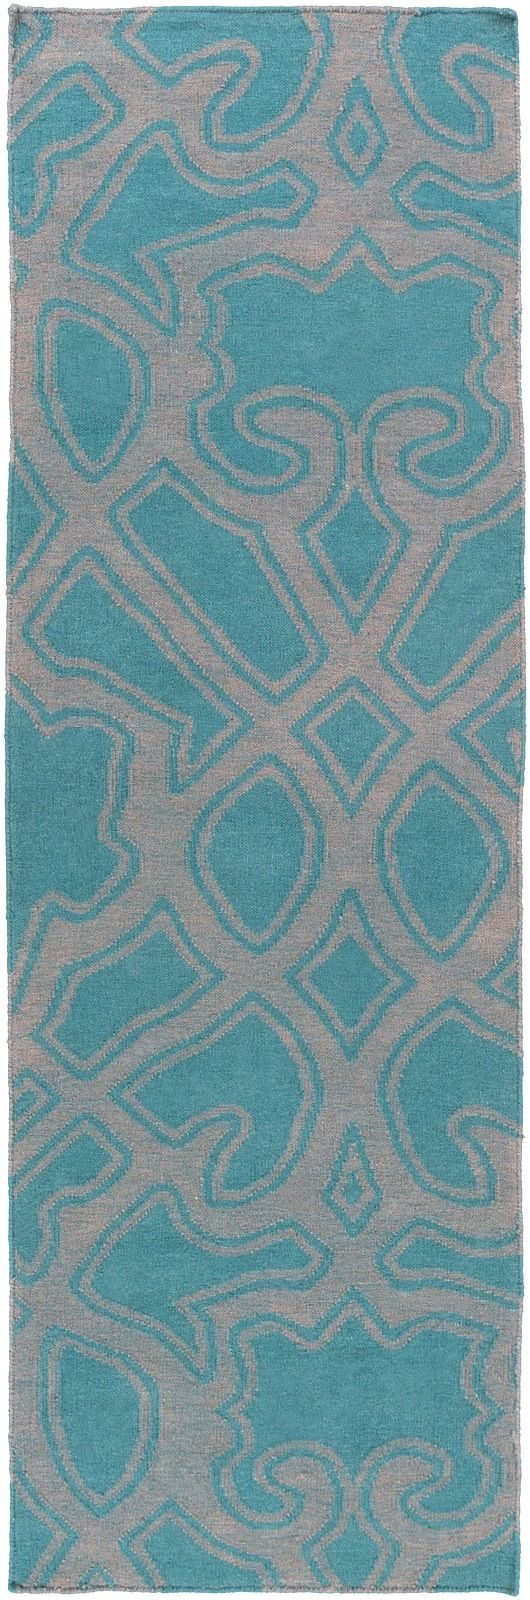 surya paddington contemporary area rug collection